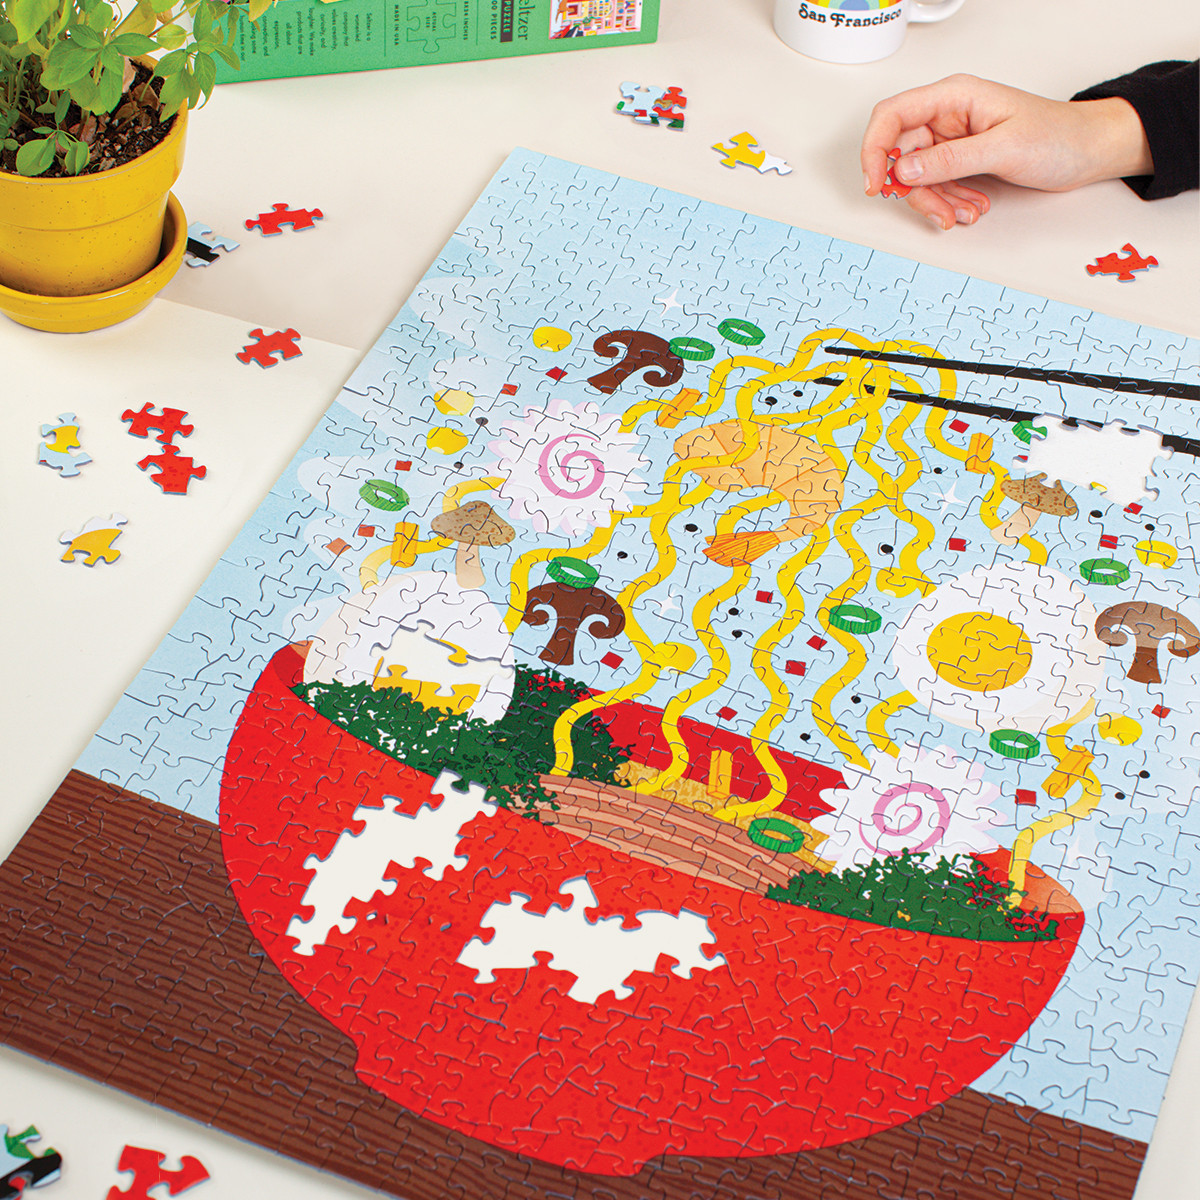 Illustrative Jigsaw Puzzles Make the Challenging Activity a Beautiful One